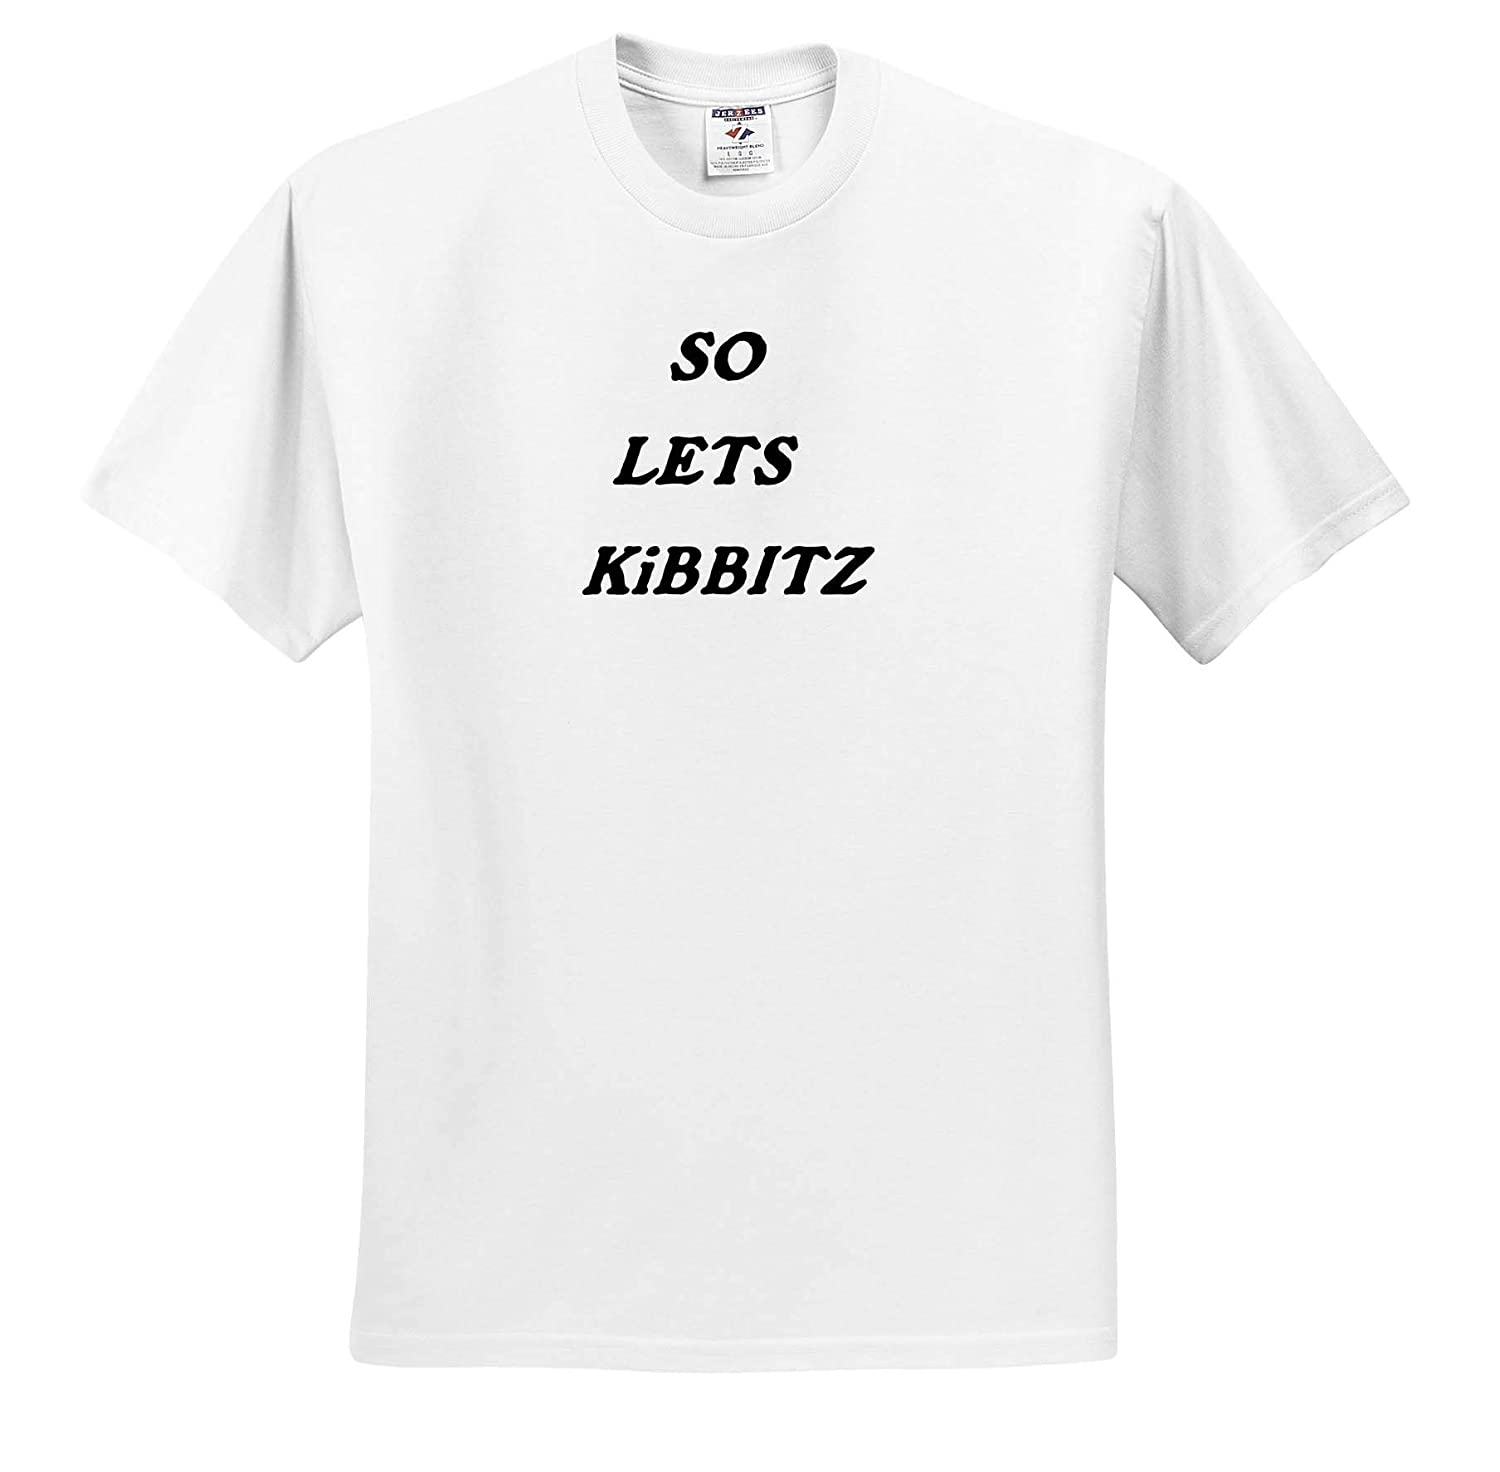 Image of Words So Lets Kibitz Saying Meaning Gossip Talk Jewish Humor and Sayings T-Shirts 3dRose Lens Art by Florene